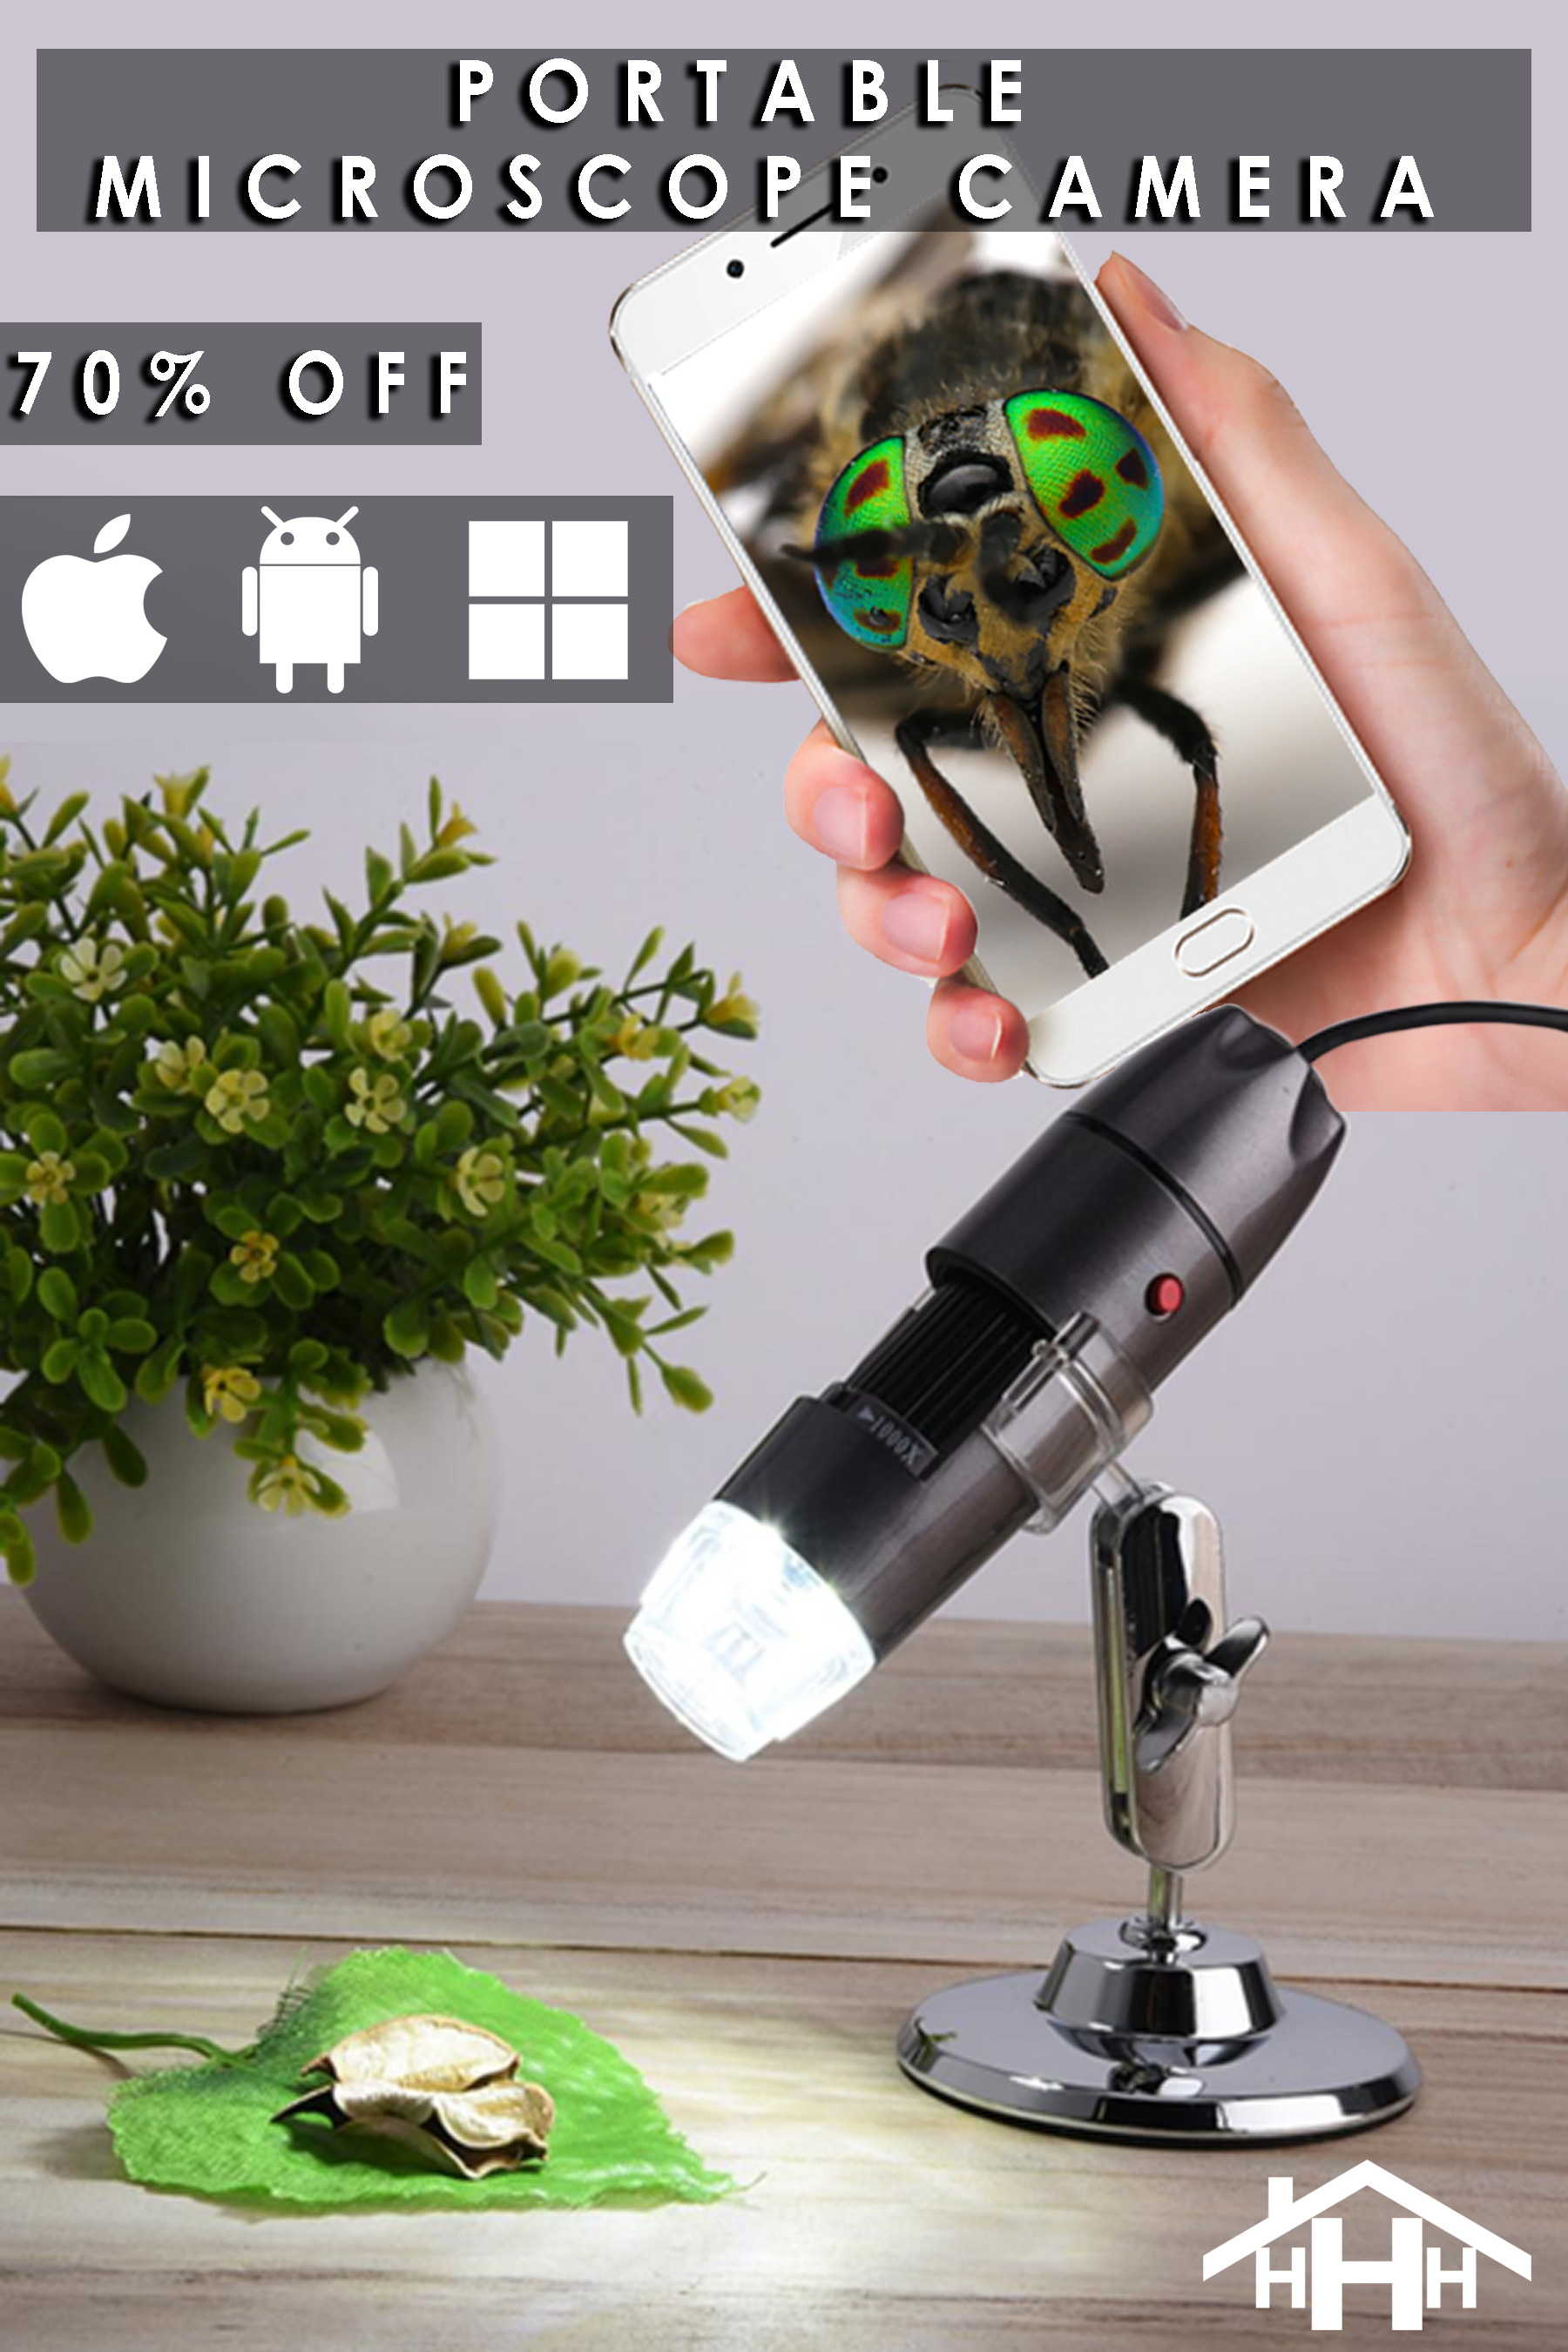 Take This Microscope Anywhere And Discover The Hidden World Around You Android Pc Mac Support Full Hd Gadgets And Gizmos Screen Repair Cool Gadgets